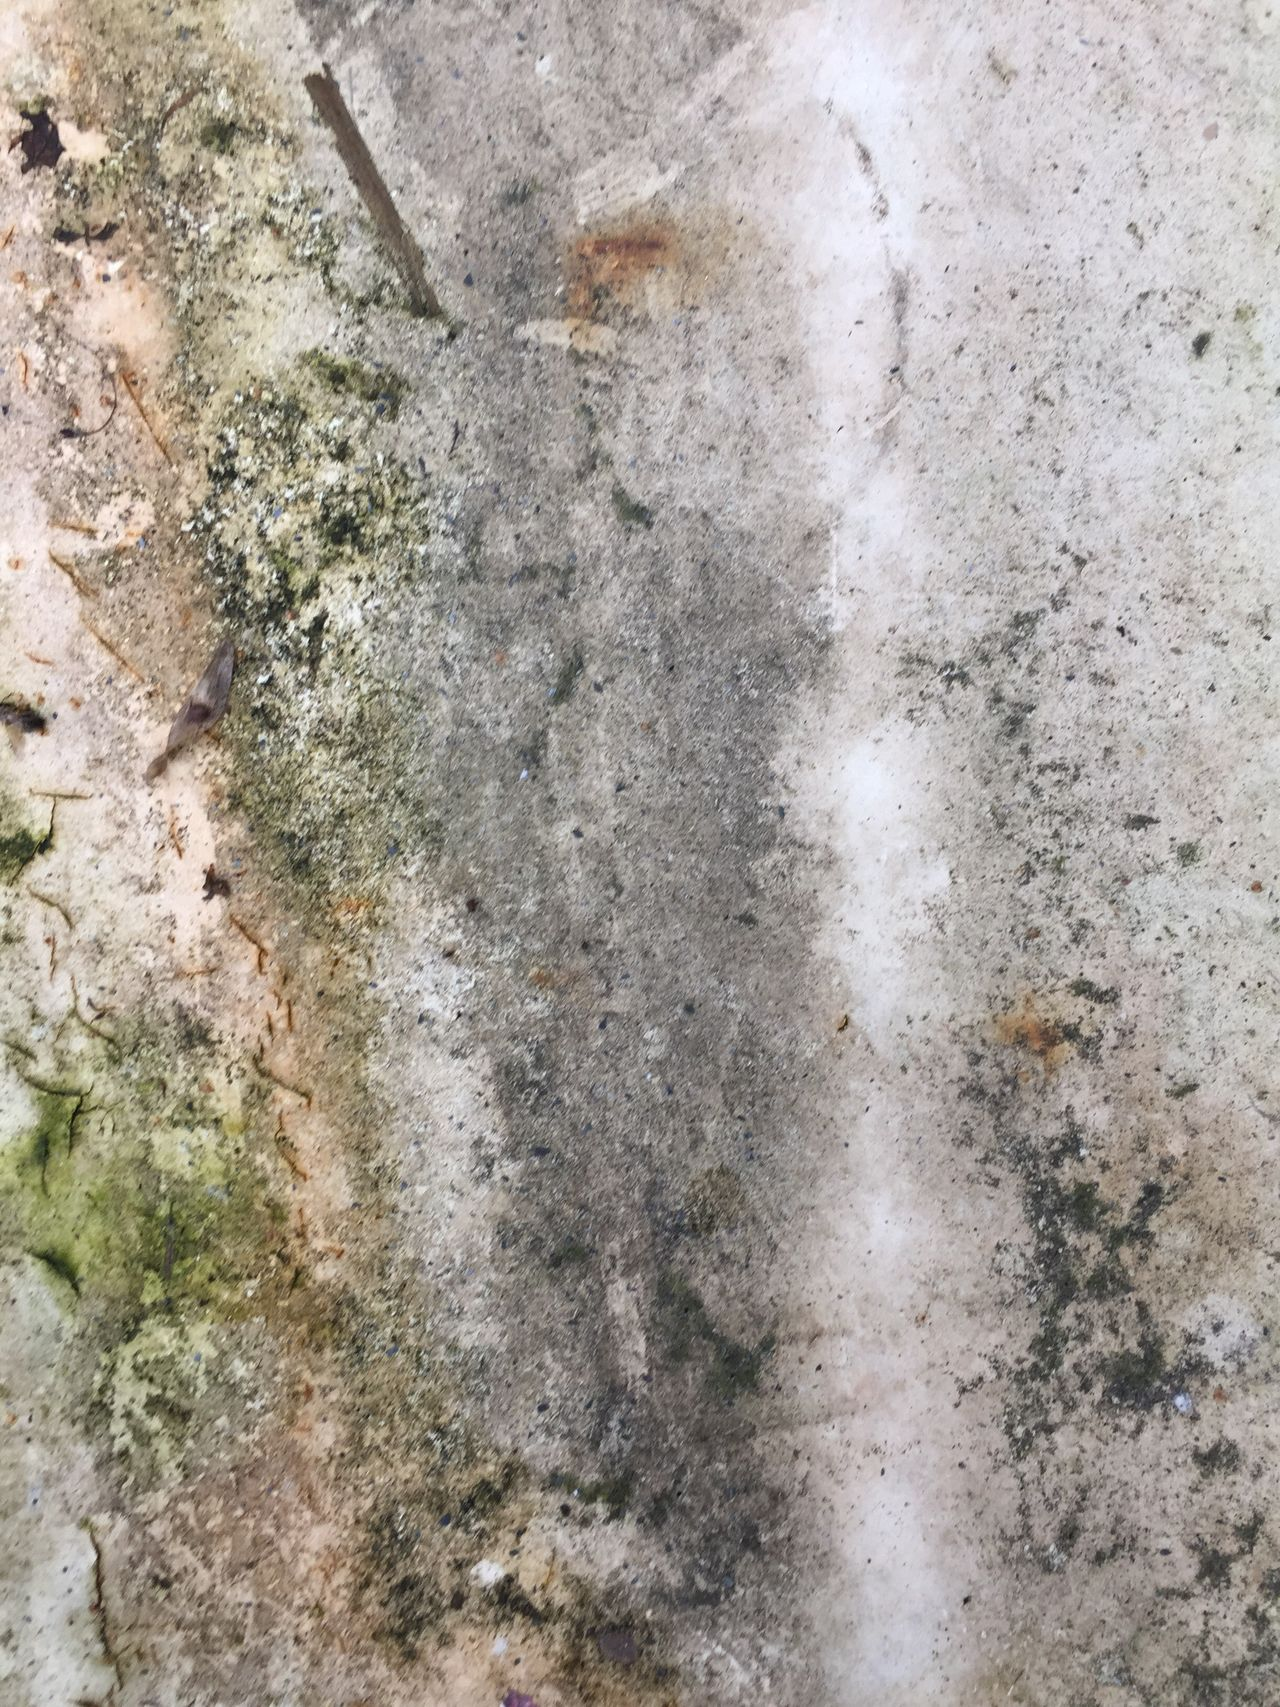 Textured  Backgrounds Full Frame Outdoors Close-up Dirt Table Moss Dirty Table No People White Background